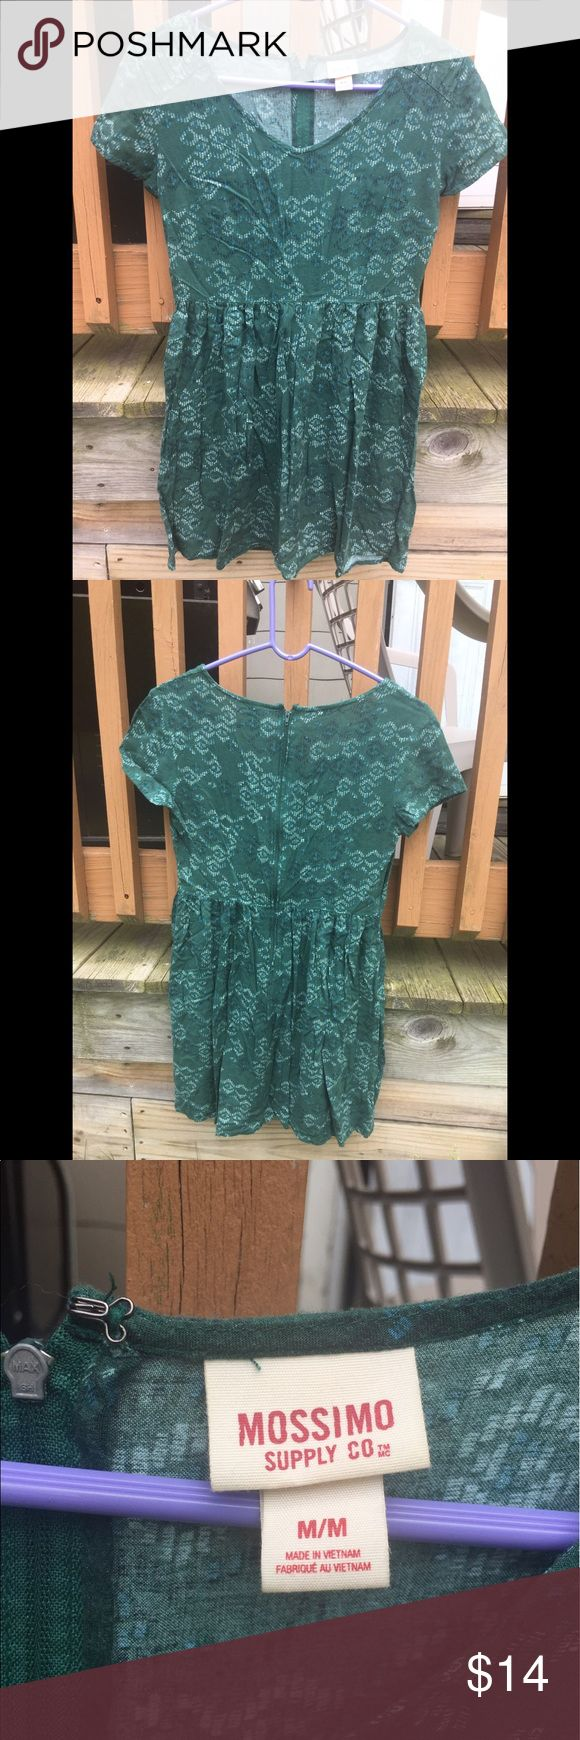 Green printed dress from Target Sort of a baby doll style dress, I'm taller and my legs make the dress much to short on me. Good condition it isn't ironed so it looks messy. Mossimo Supply Co. Dresses